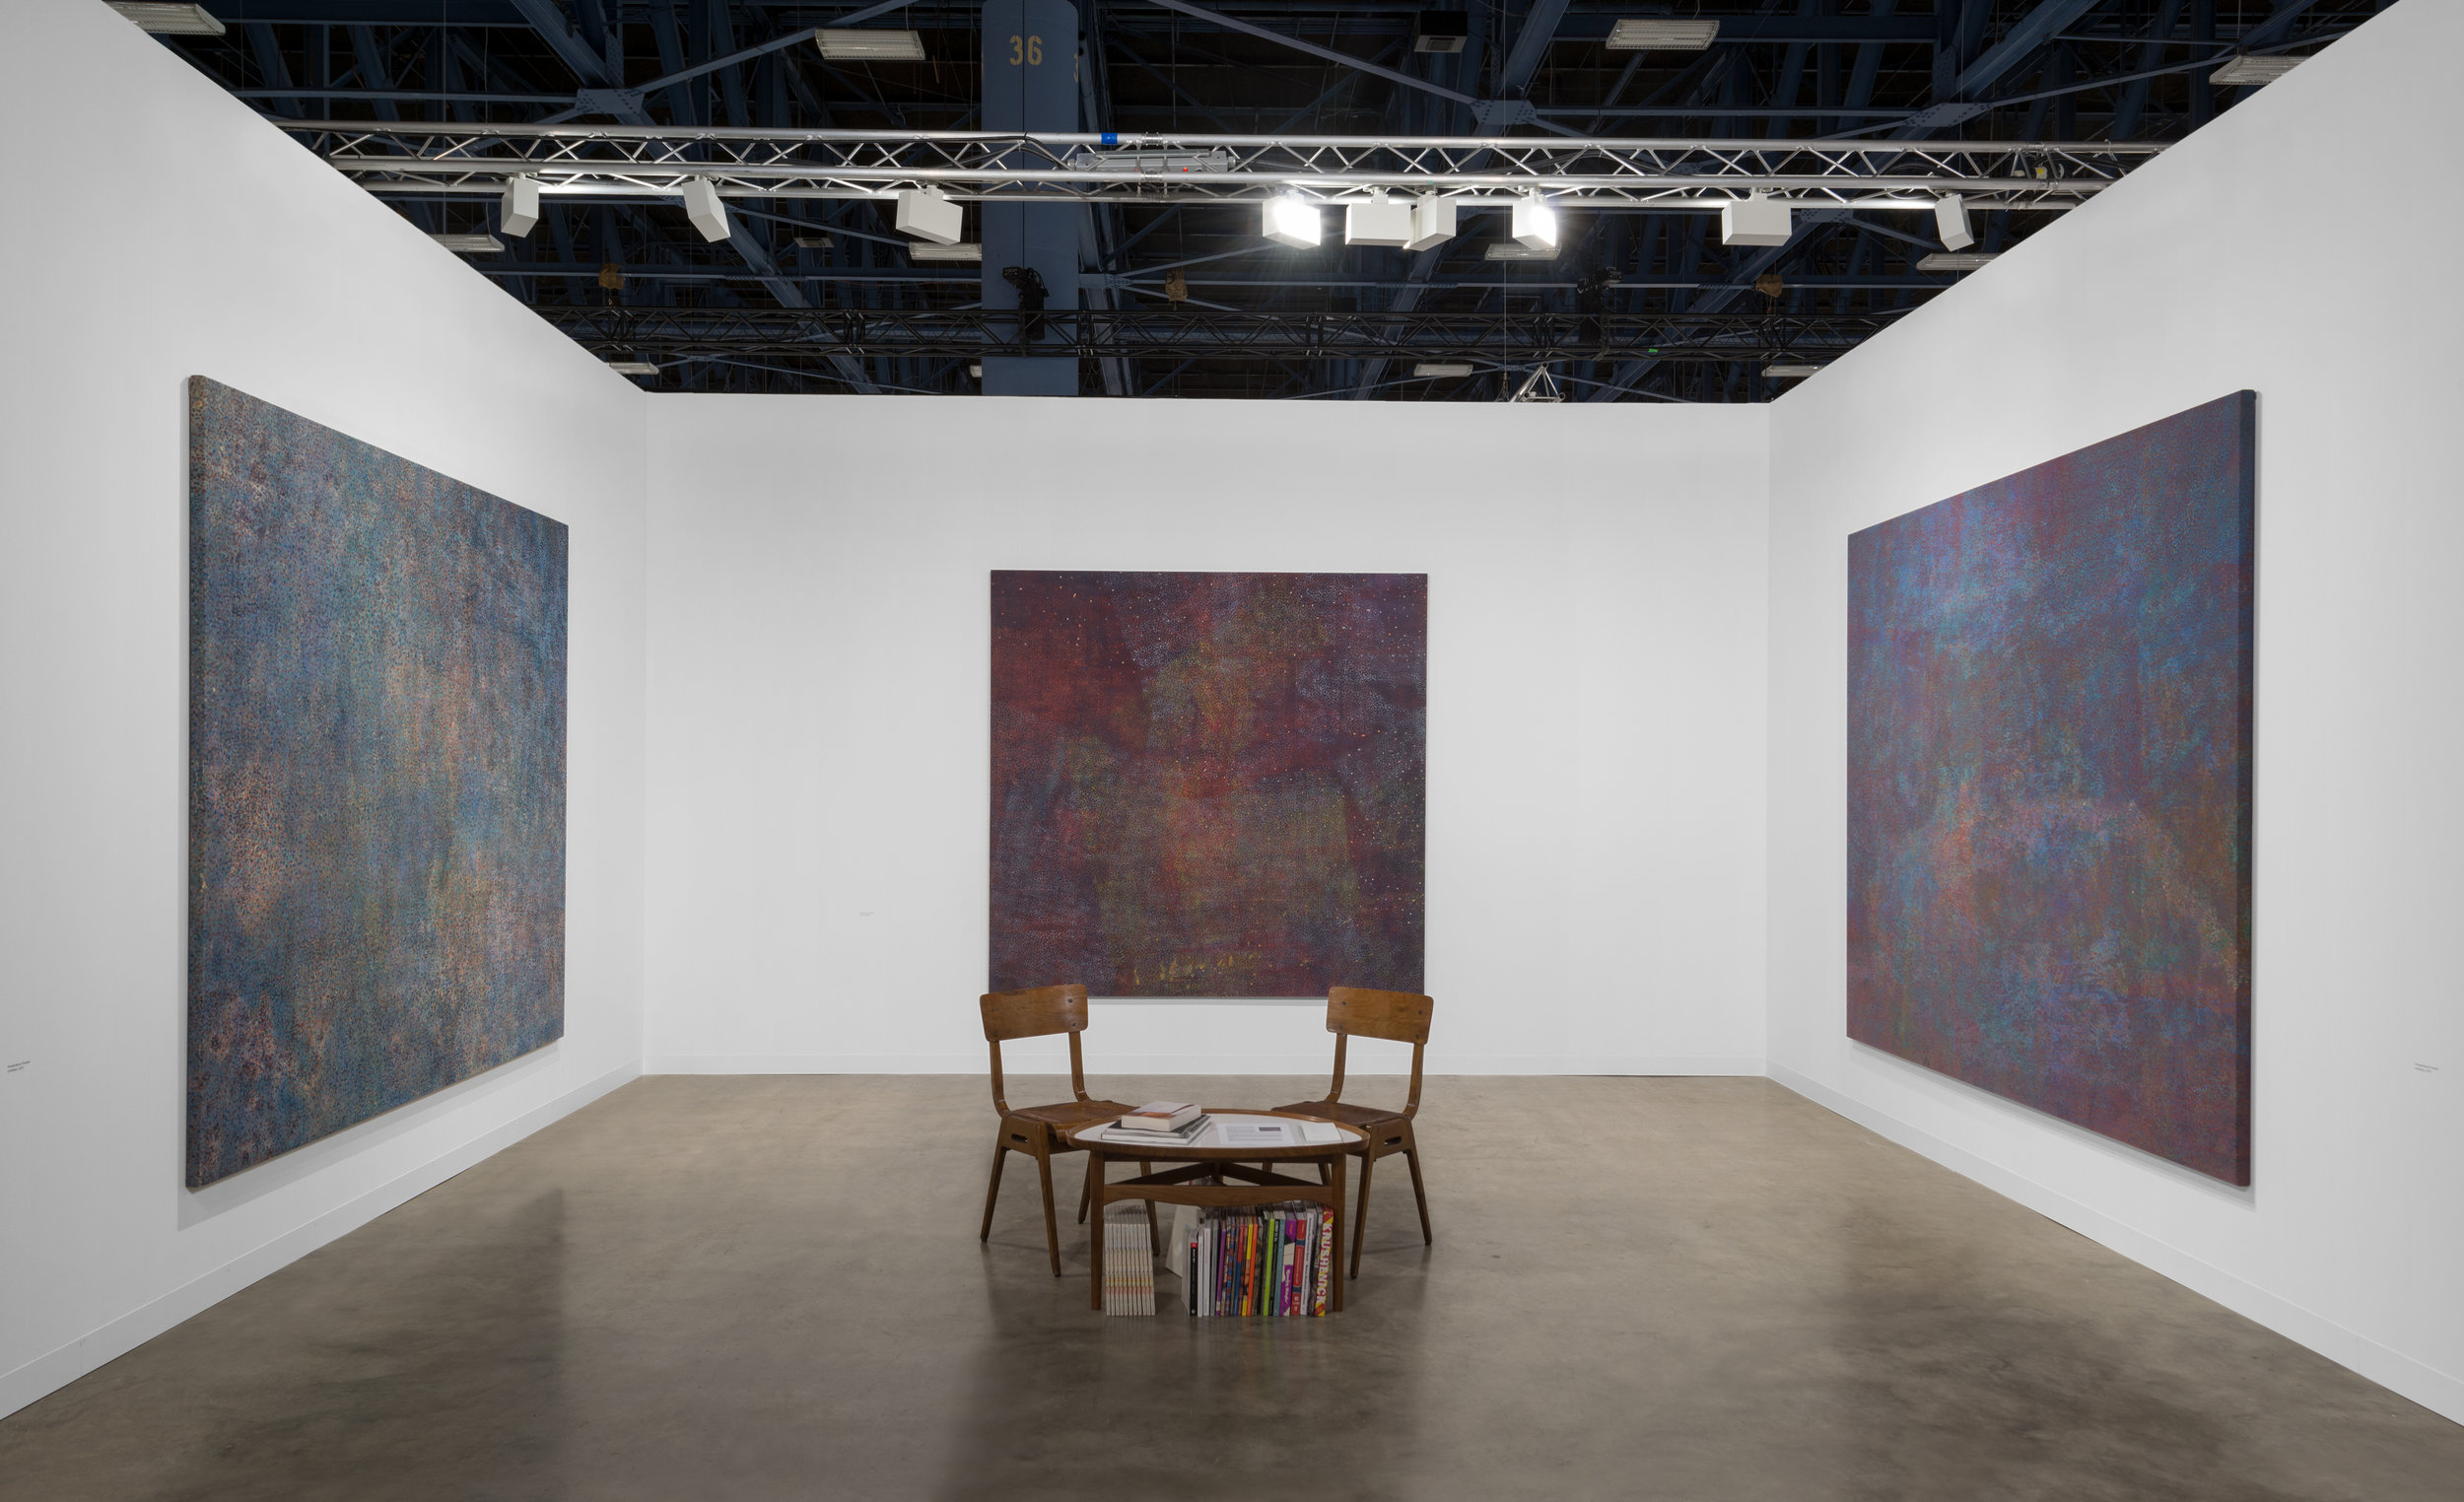 Art Basel: Miami Beach - Garth Greenan Gallery, New York | November 30 – December 4, 2016